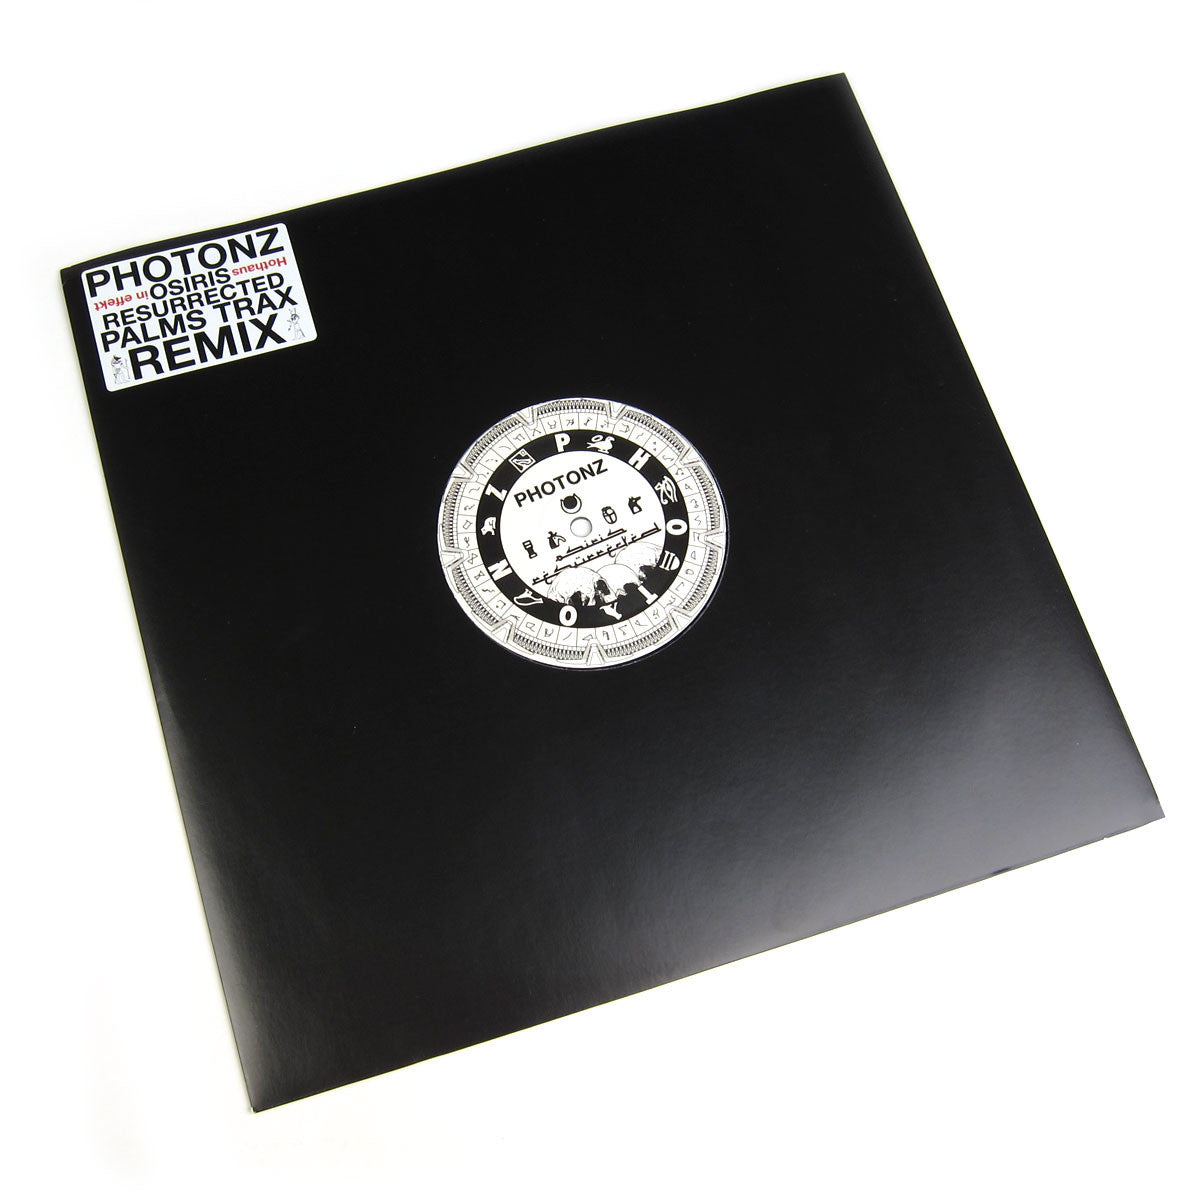 Photonz: Osiris Resurrected (Palms Trax) Vinyl 12""